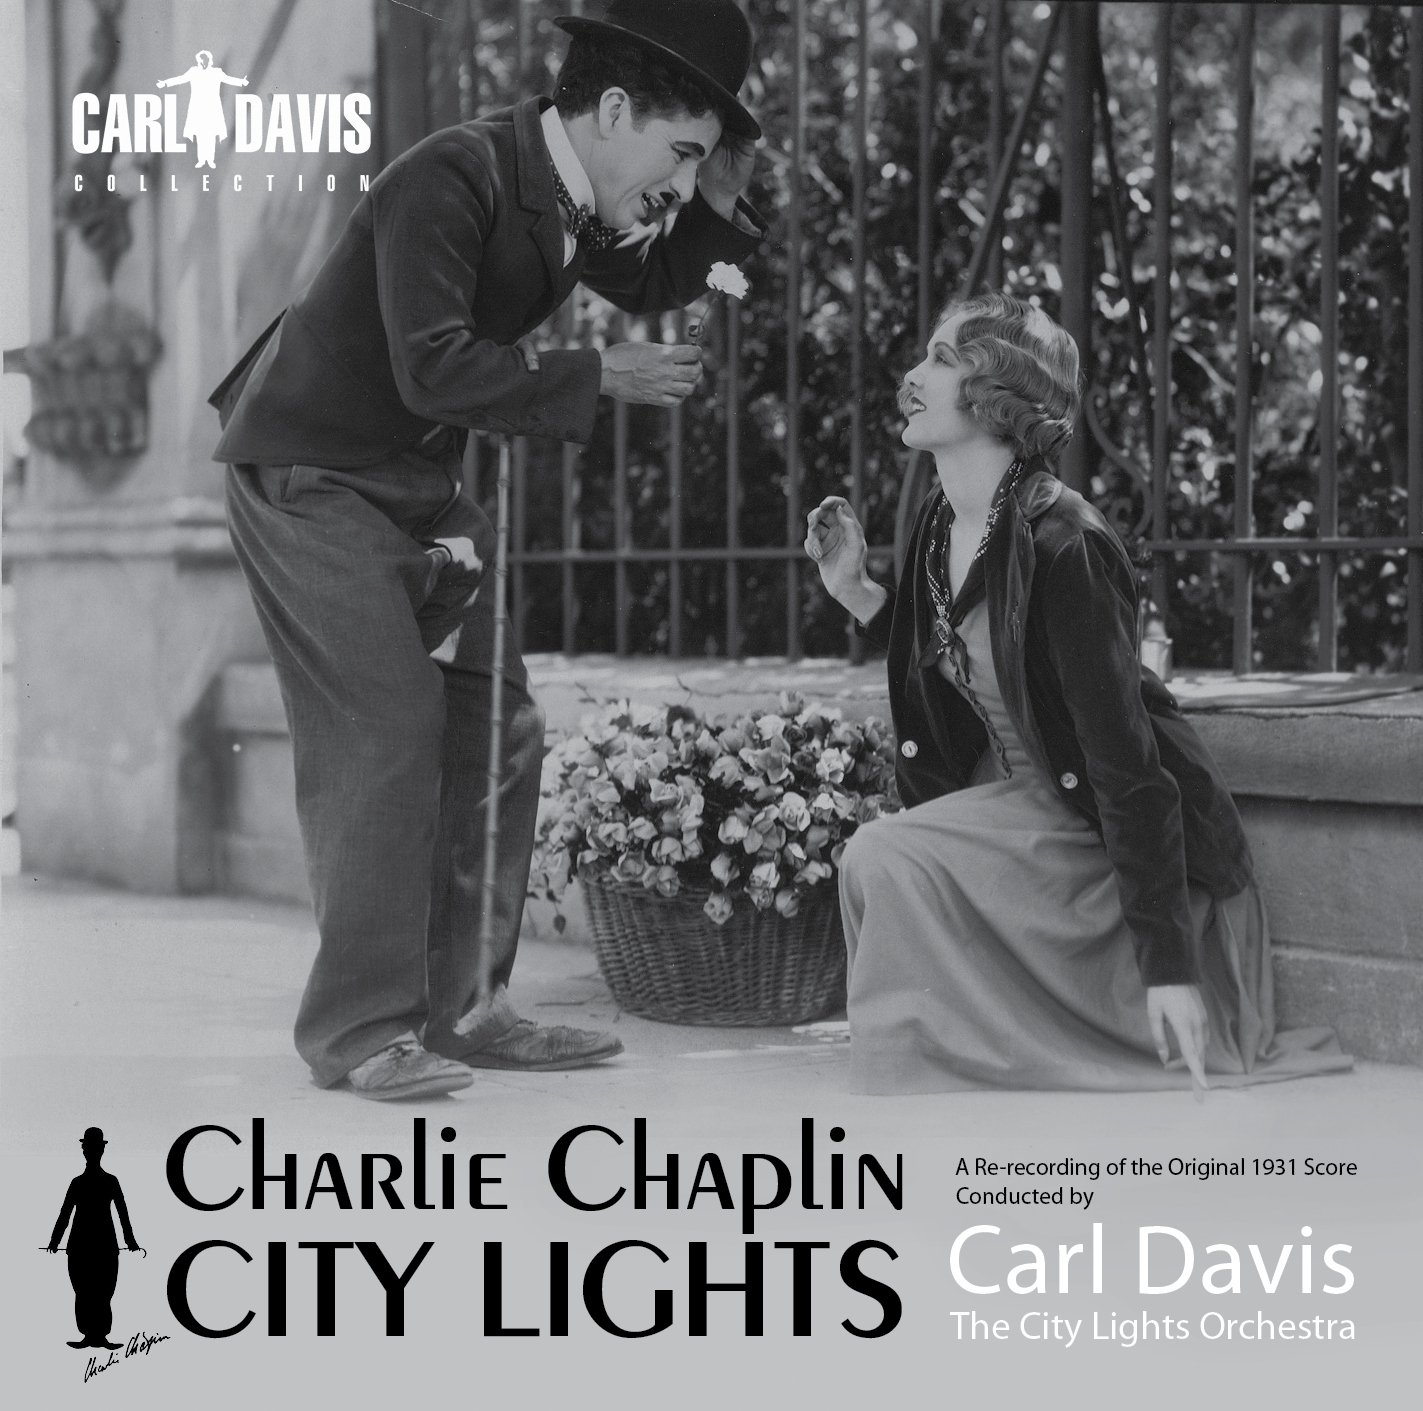 city lights orchestra charles chaplin jose padilla carl davis city lights orchestra charles chaplin jose padilla carl davis charlie chaplin city lights com music